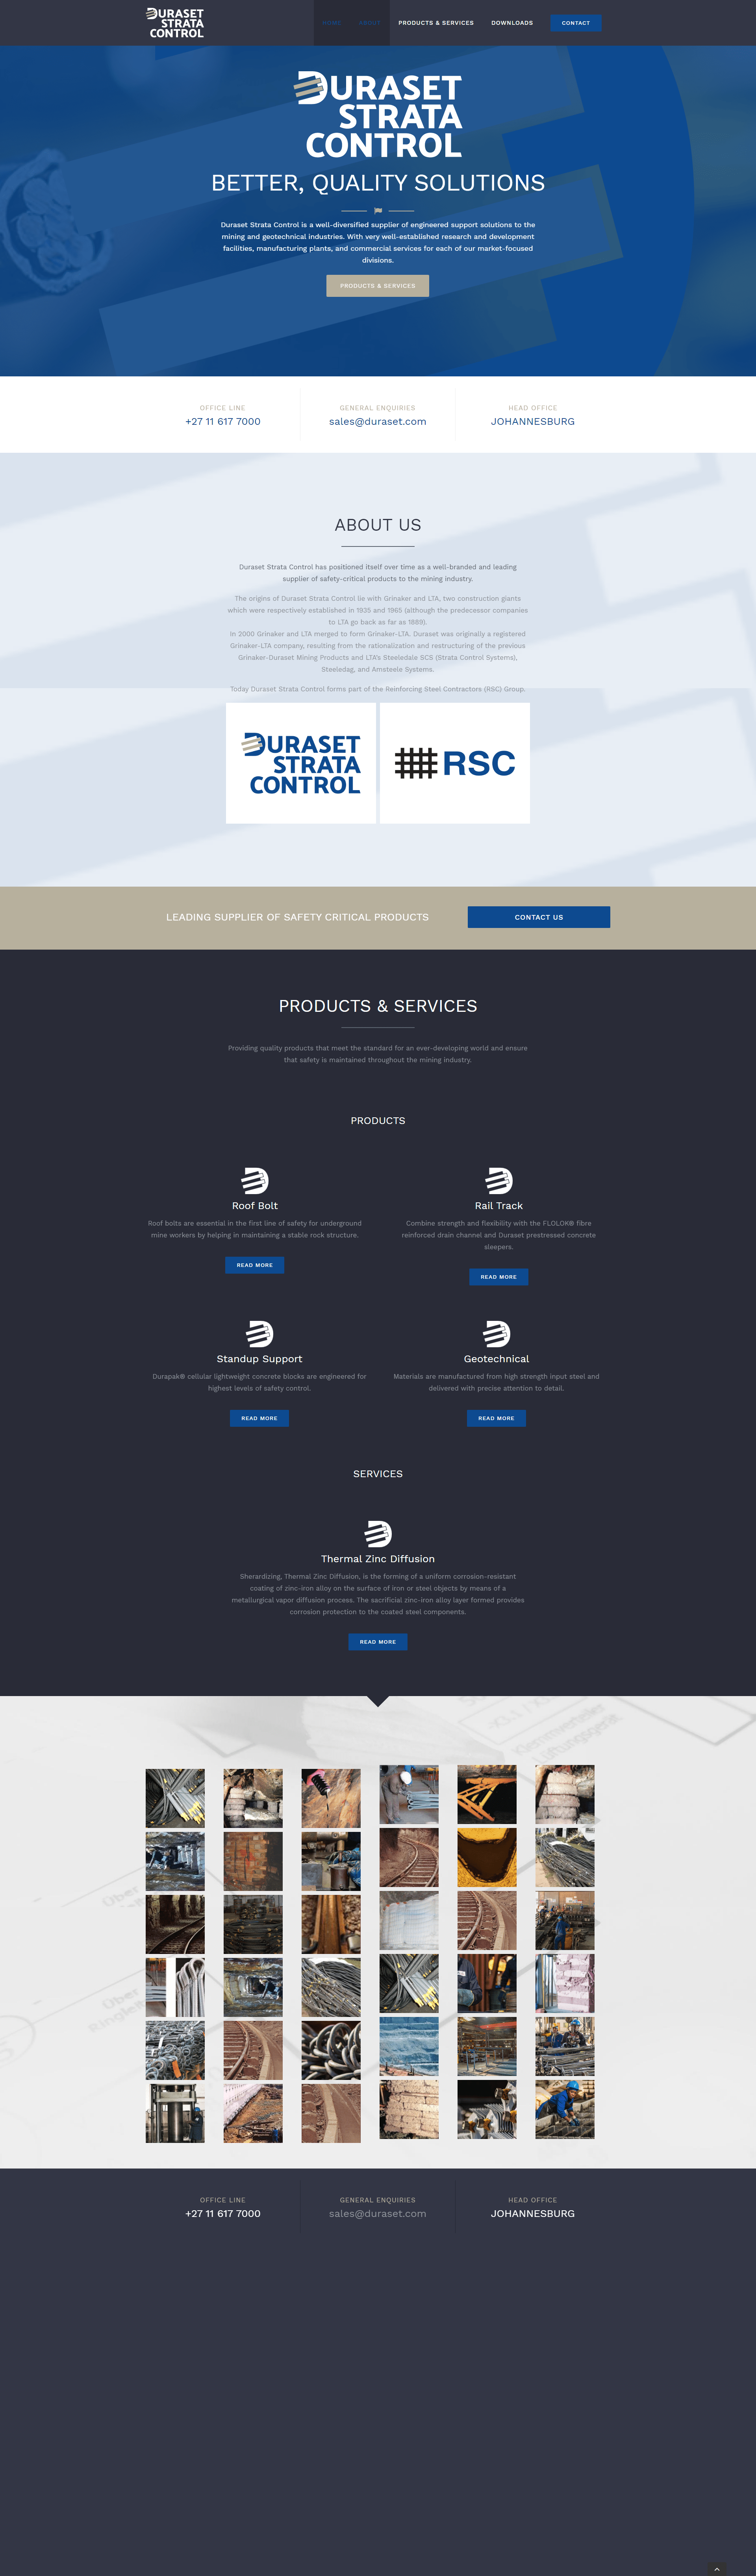 Duraset Home Page